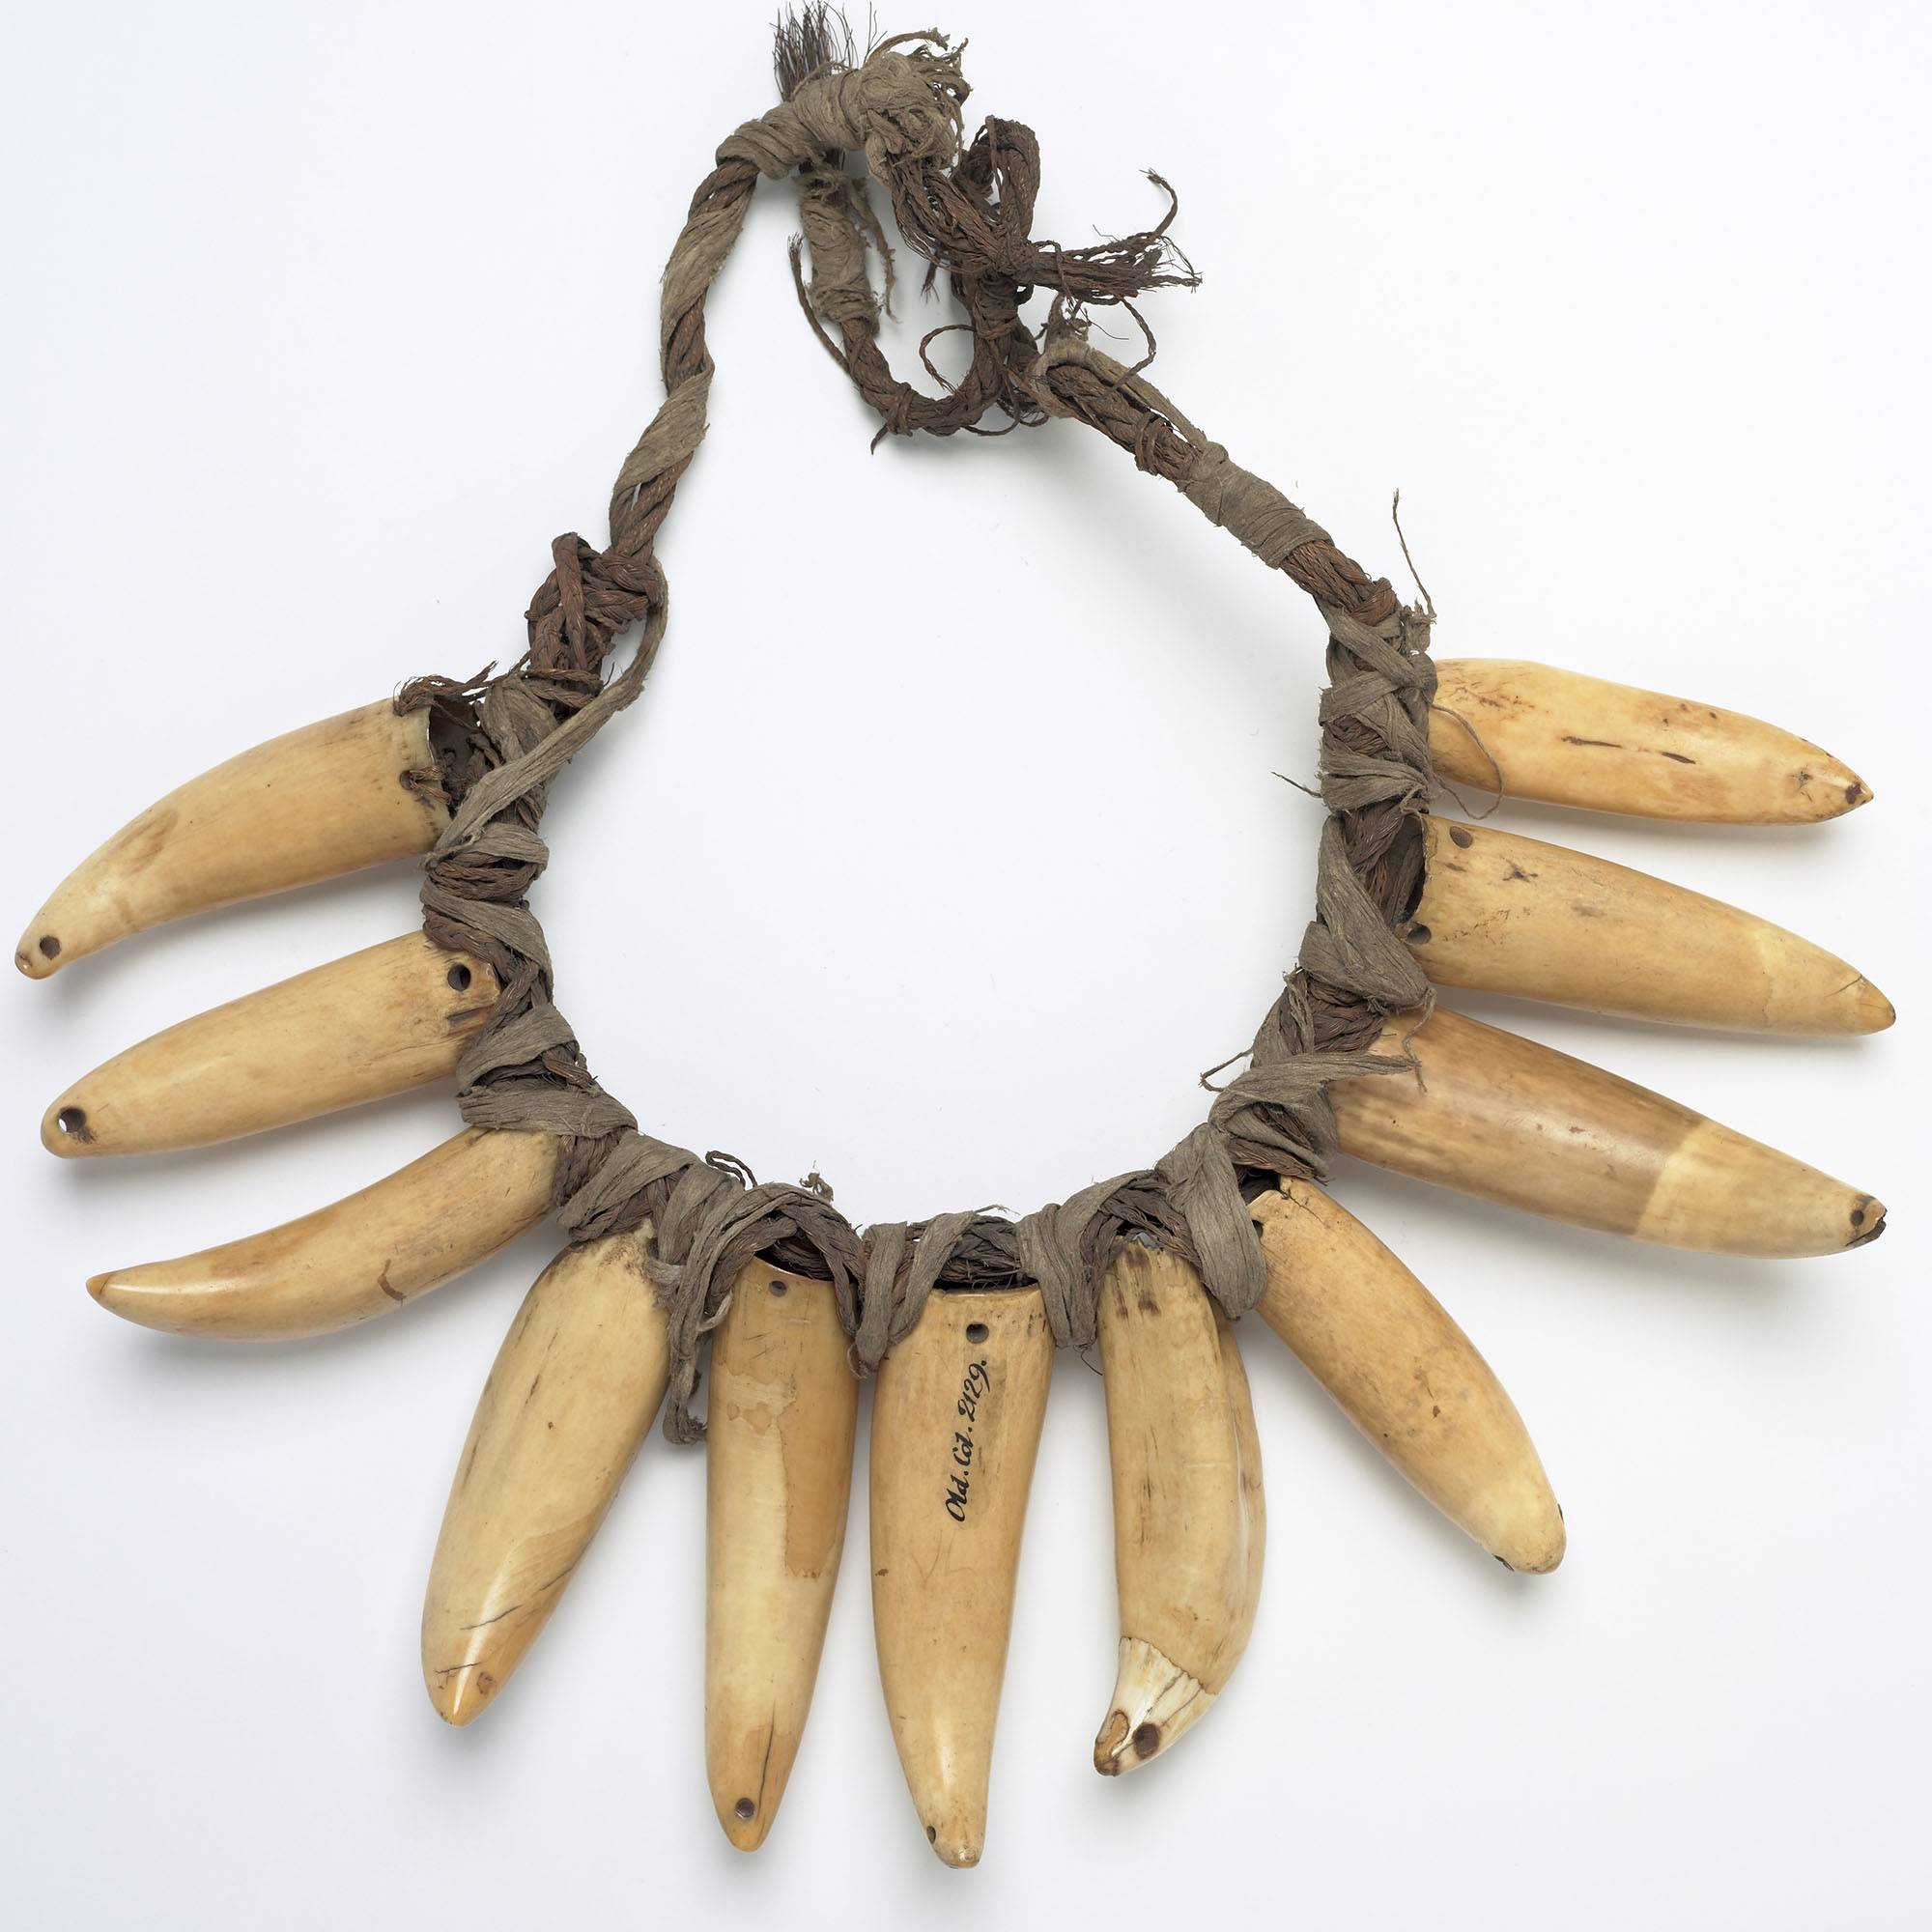 Necklace made of multiple whale's teeth